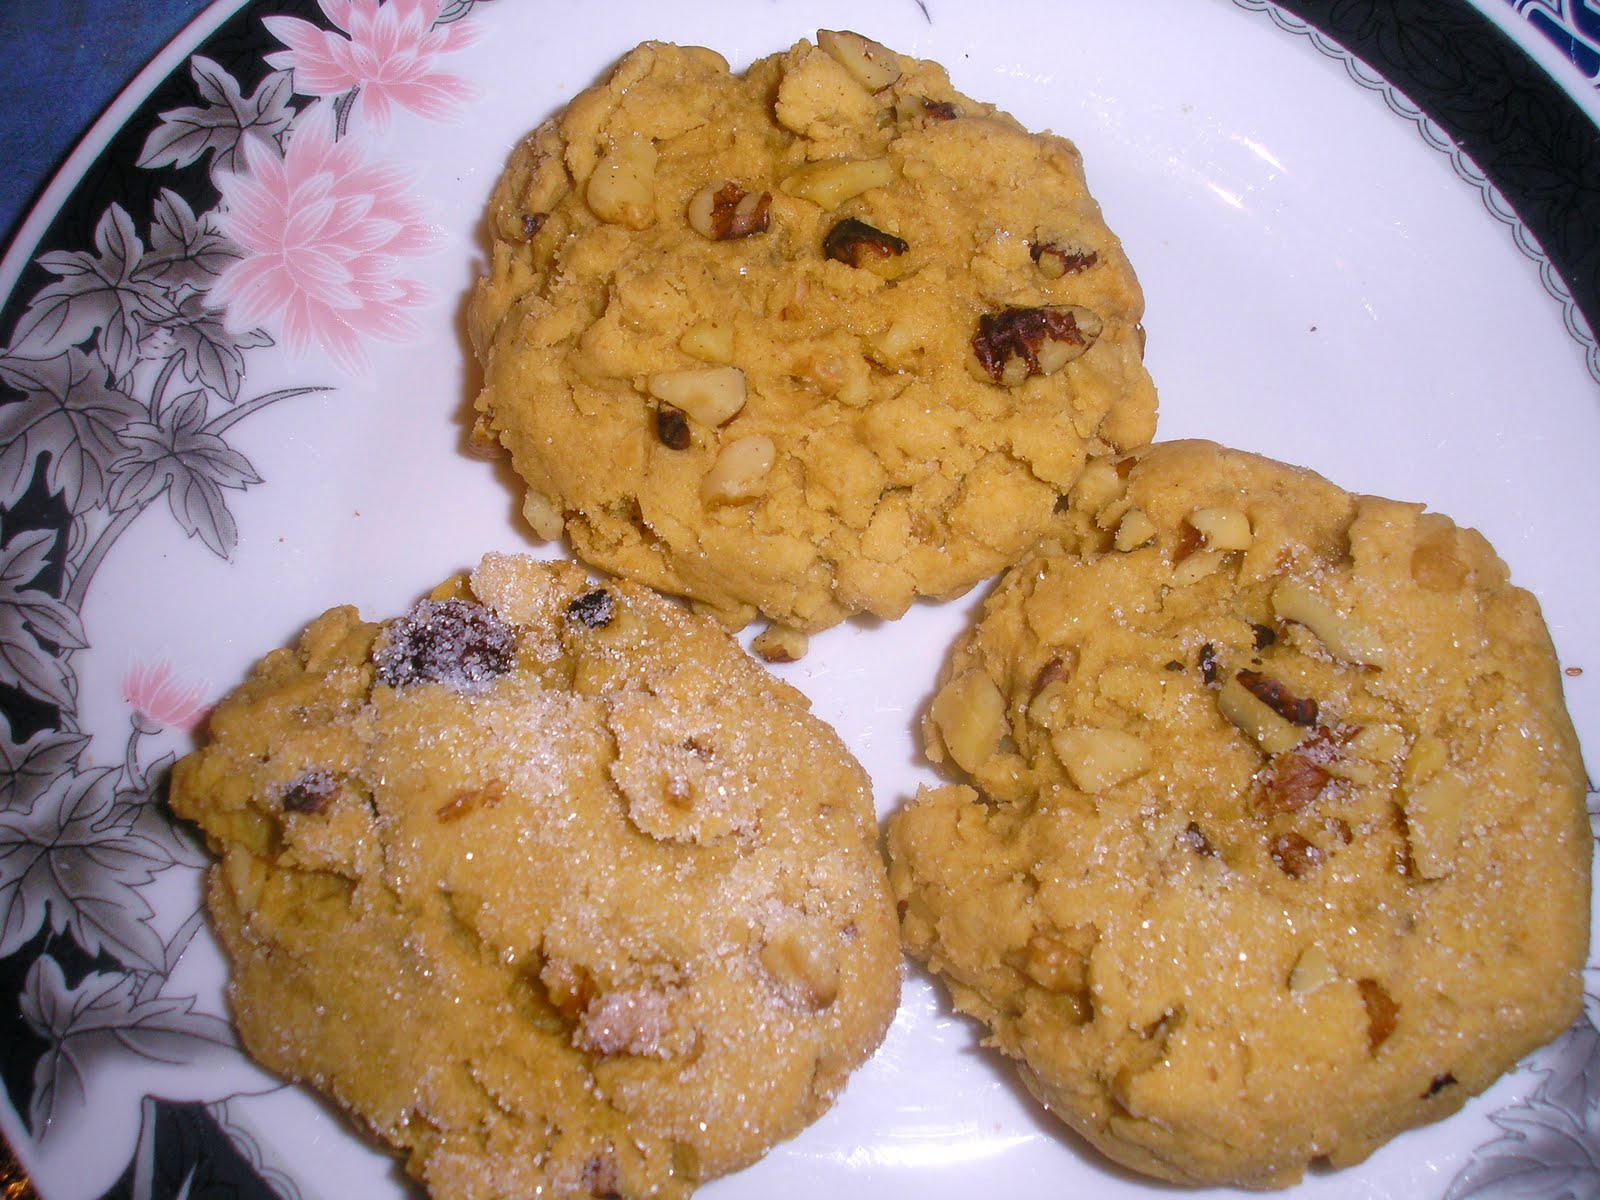 Chef Cookies Biscuits Recipes: Walnuts & Cinnamon sugar Biscuits